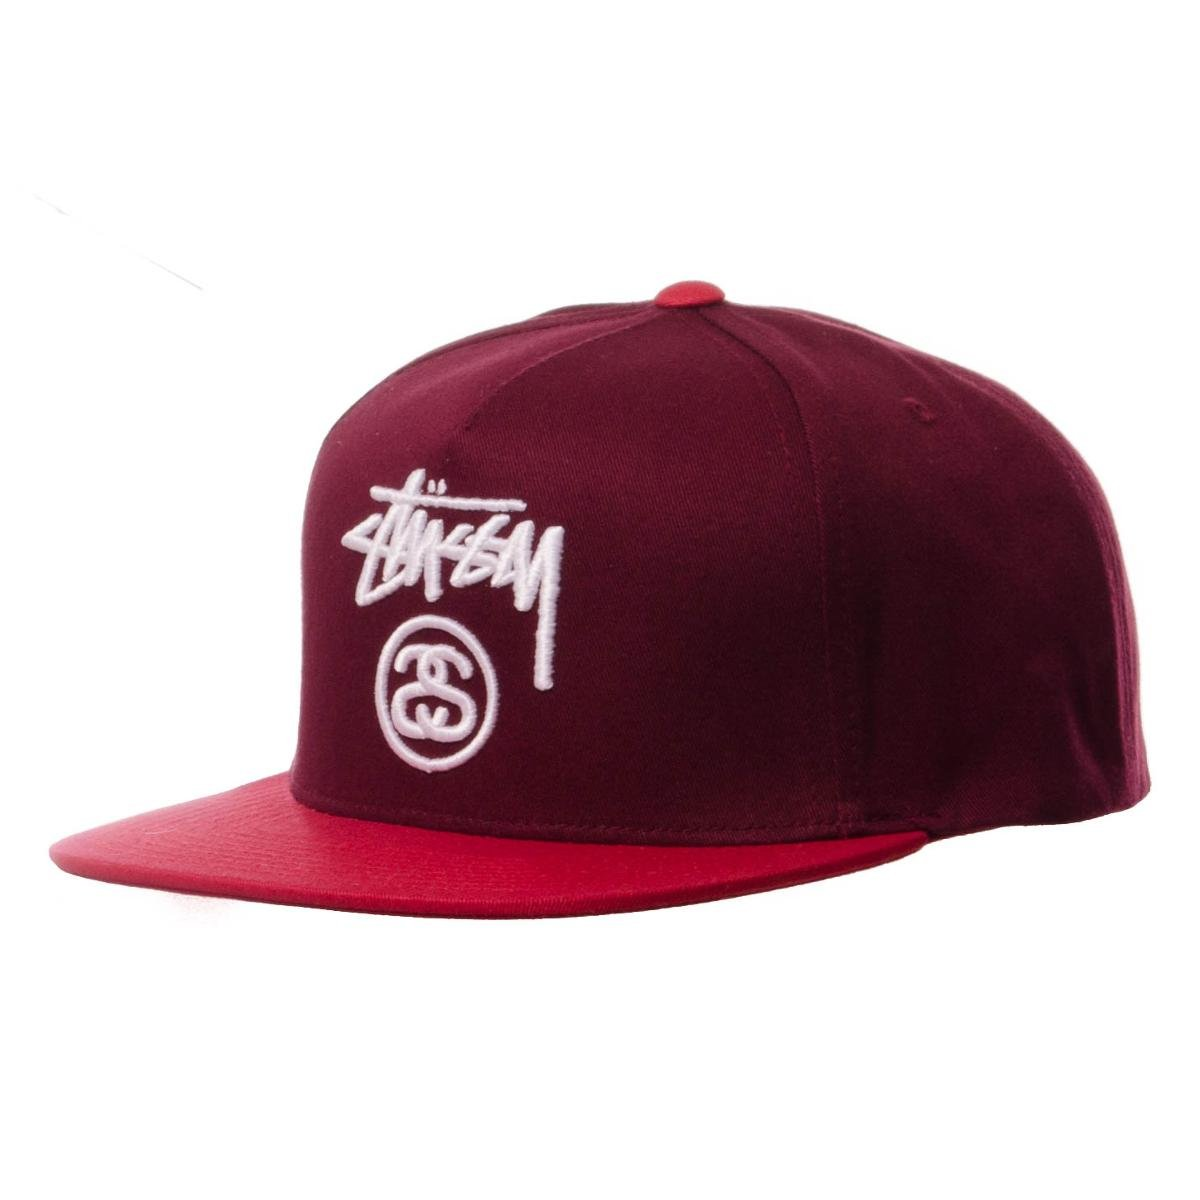 b35e80a9a3d Amazon.com  Stussy - Mens Stock Lock Snapback Hat